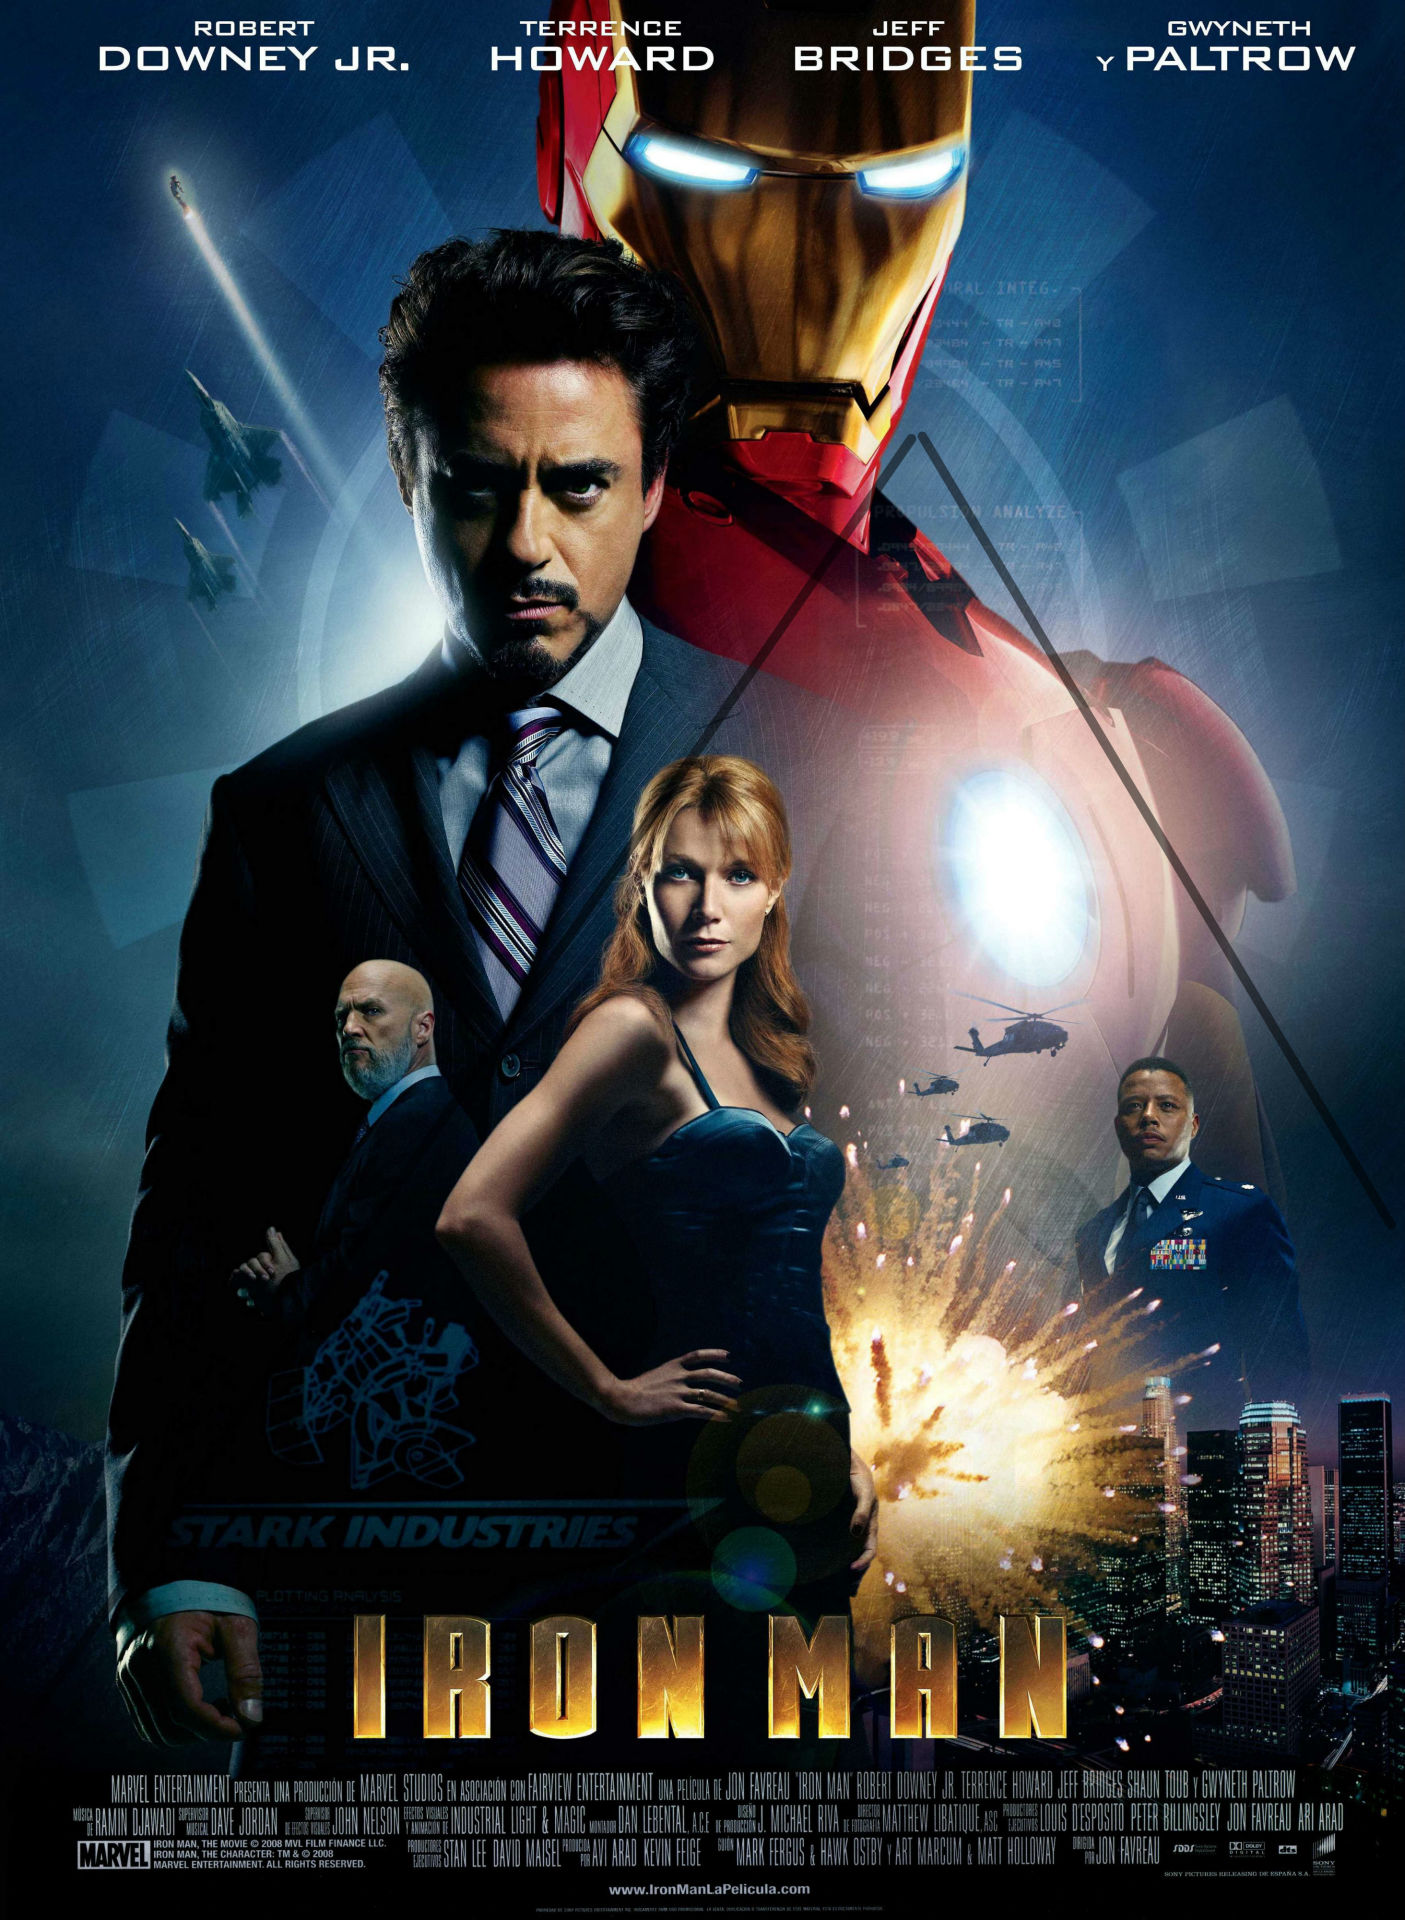 One Movie Punch - Episode 001 - Iron Man (2008)